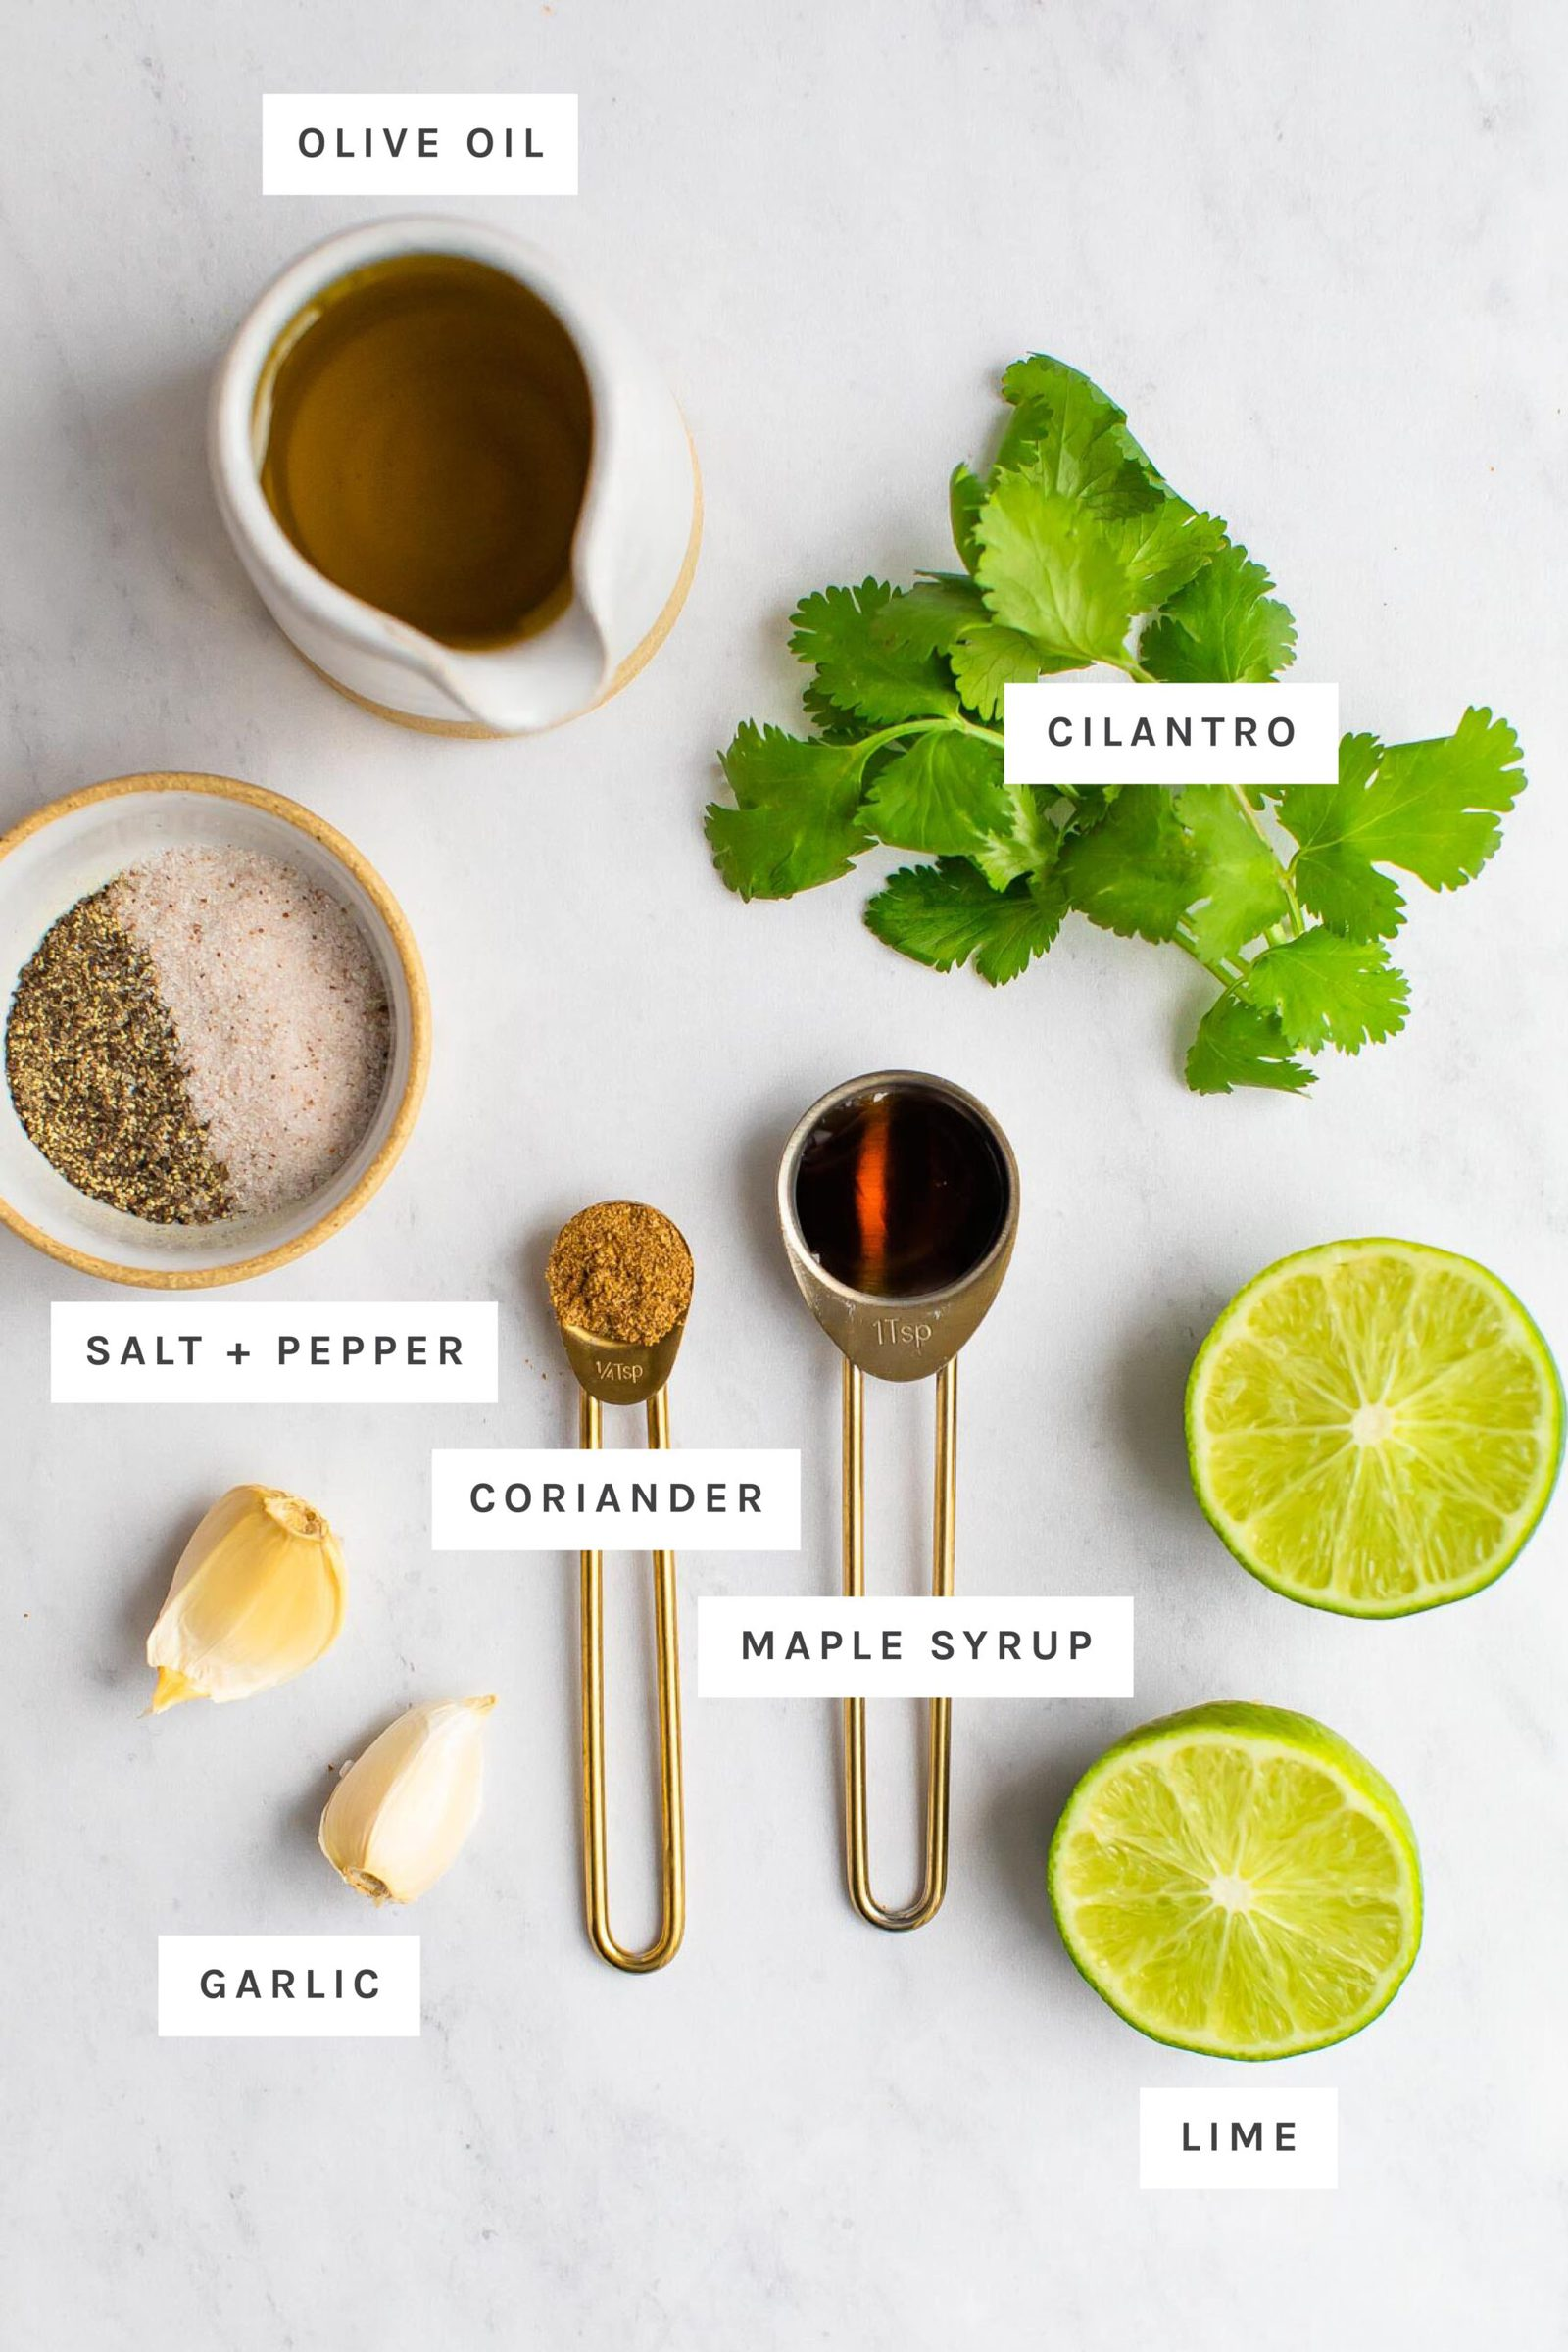 Olive oil, cilantro, salt, pepper, coriander, garlic, lime and maple measured out on a table. Each ingredient is labeled.